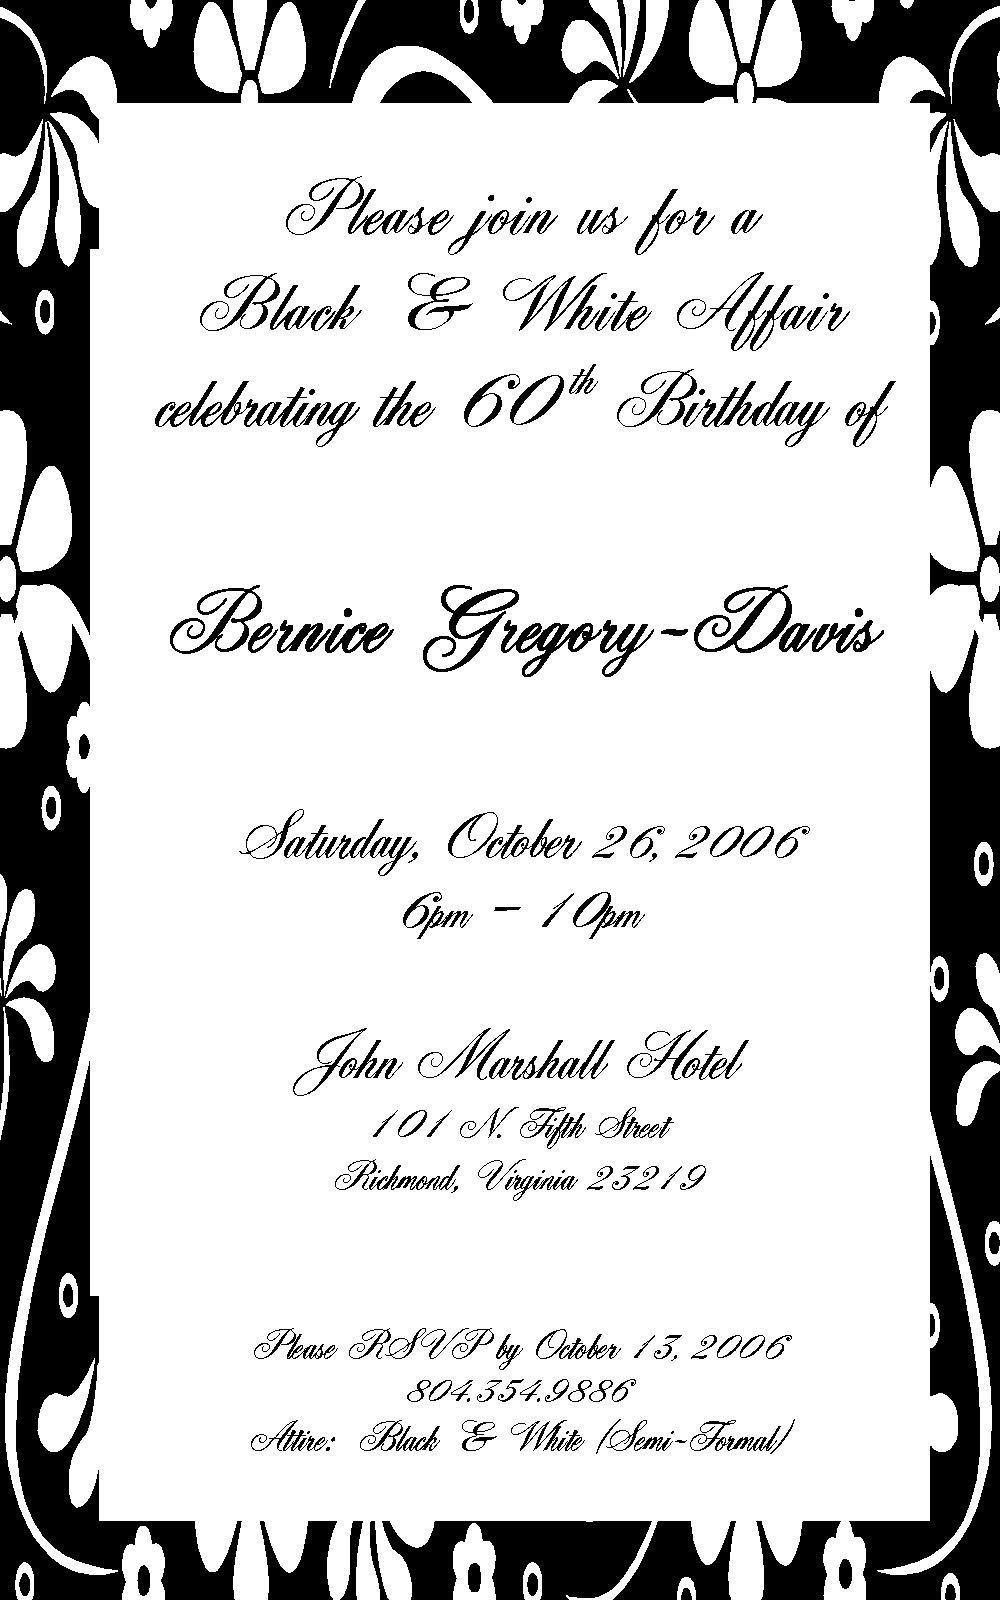 Birthday invitation sample party invitation pinterest dinner birthday invitation sample stopboris Images